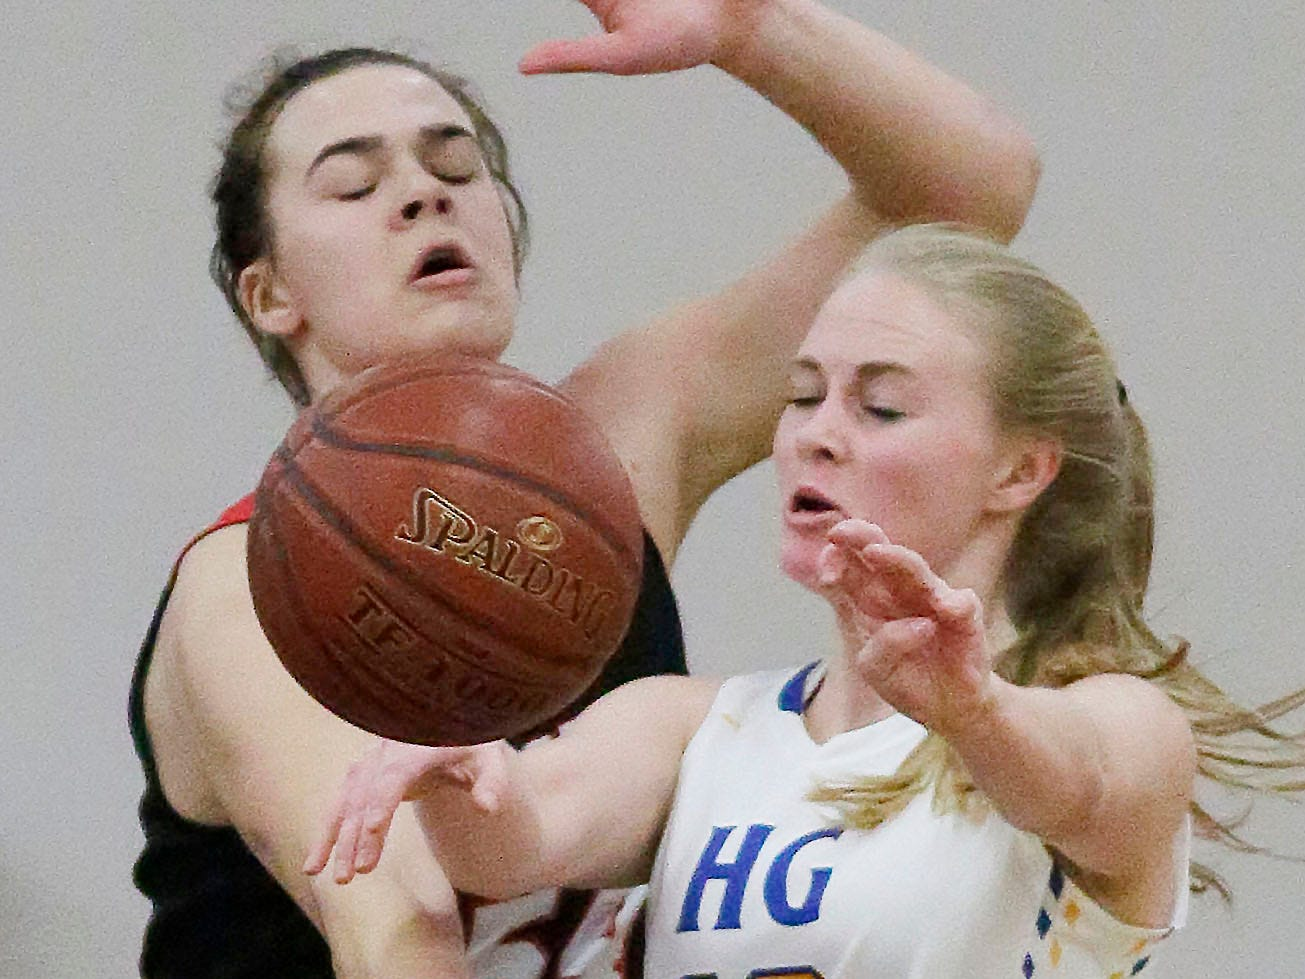 Oostburg's Skylar Ternes (54) and Howards Grove's Leah Parnitzke (10) reach for the ball, Saturday, February 23, 2019, at Howards Grove, Wis.